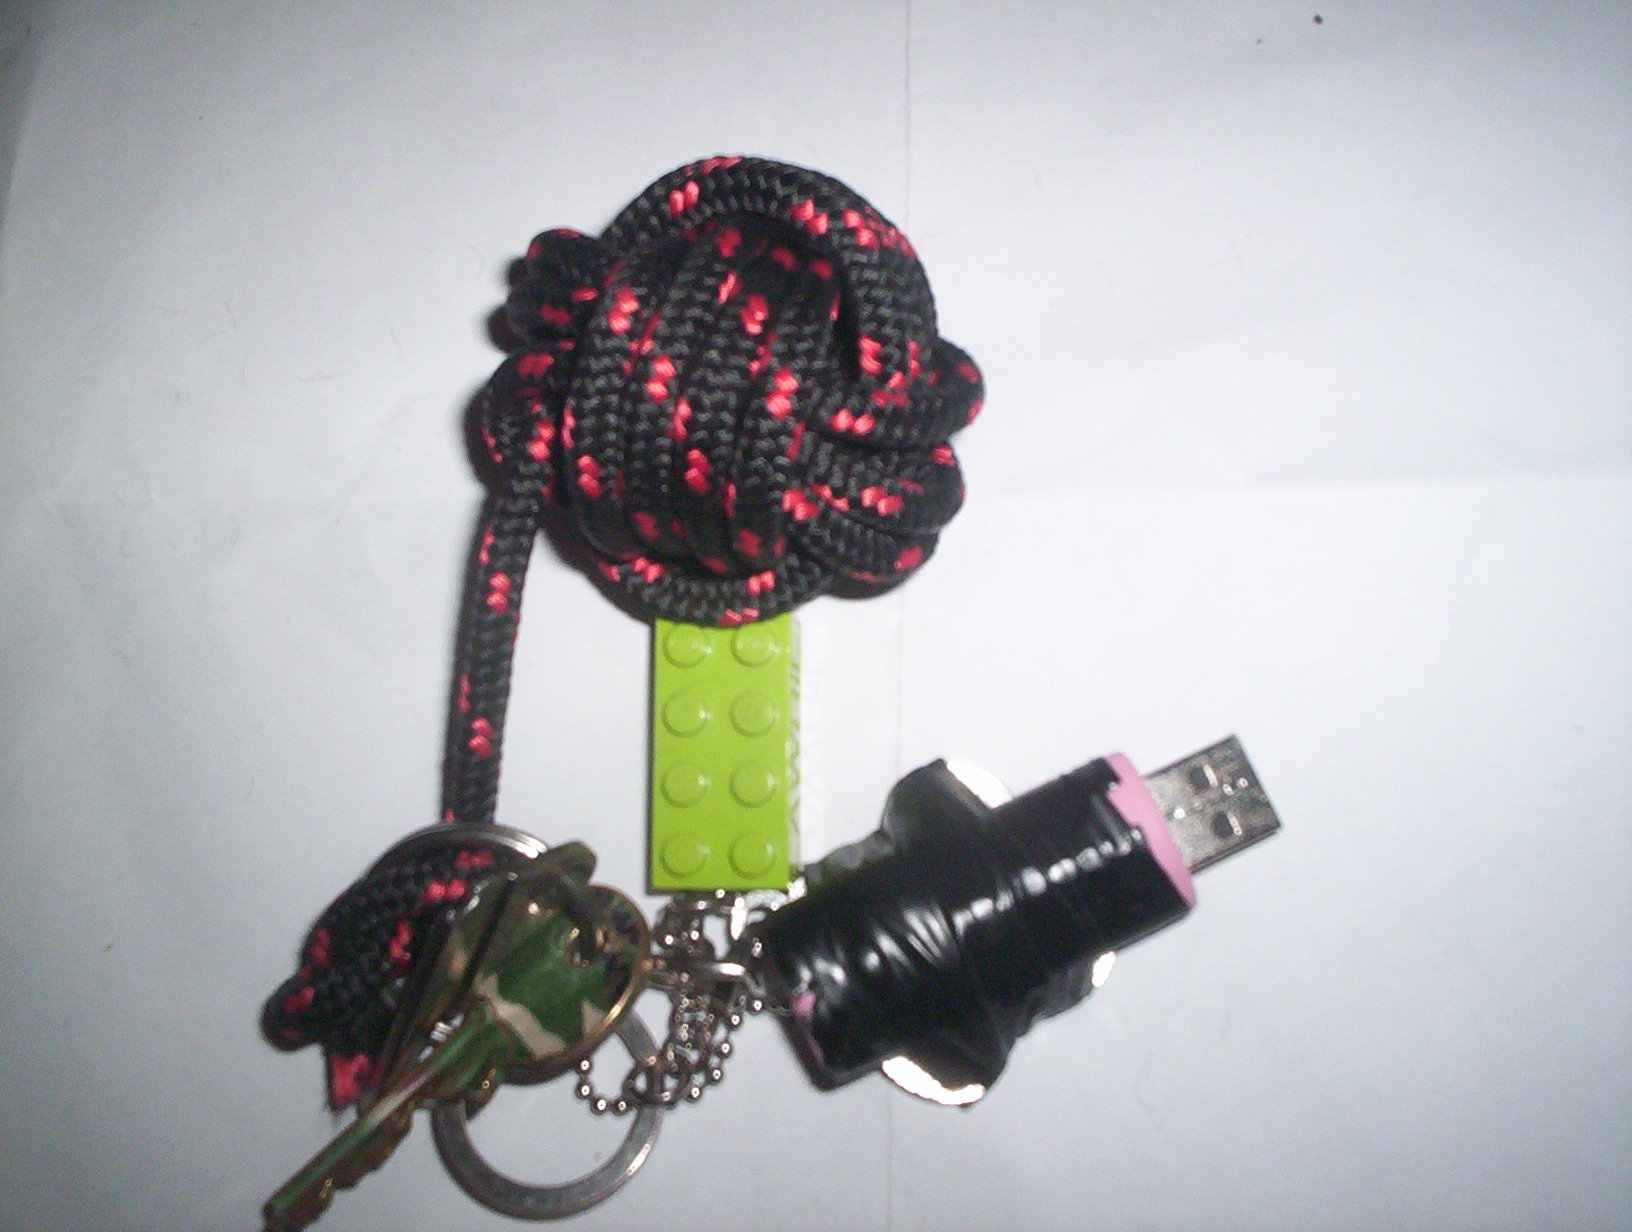 Monkey's Fist Floating Keychain